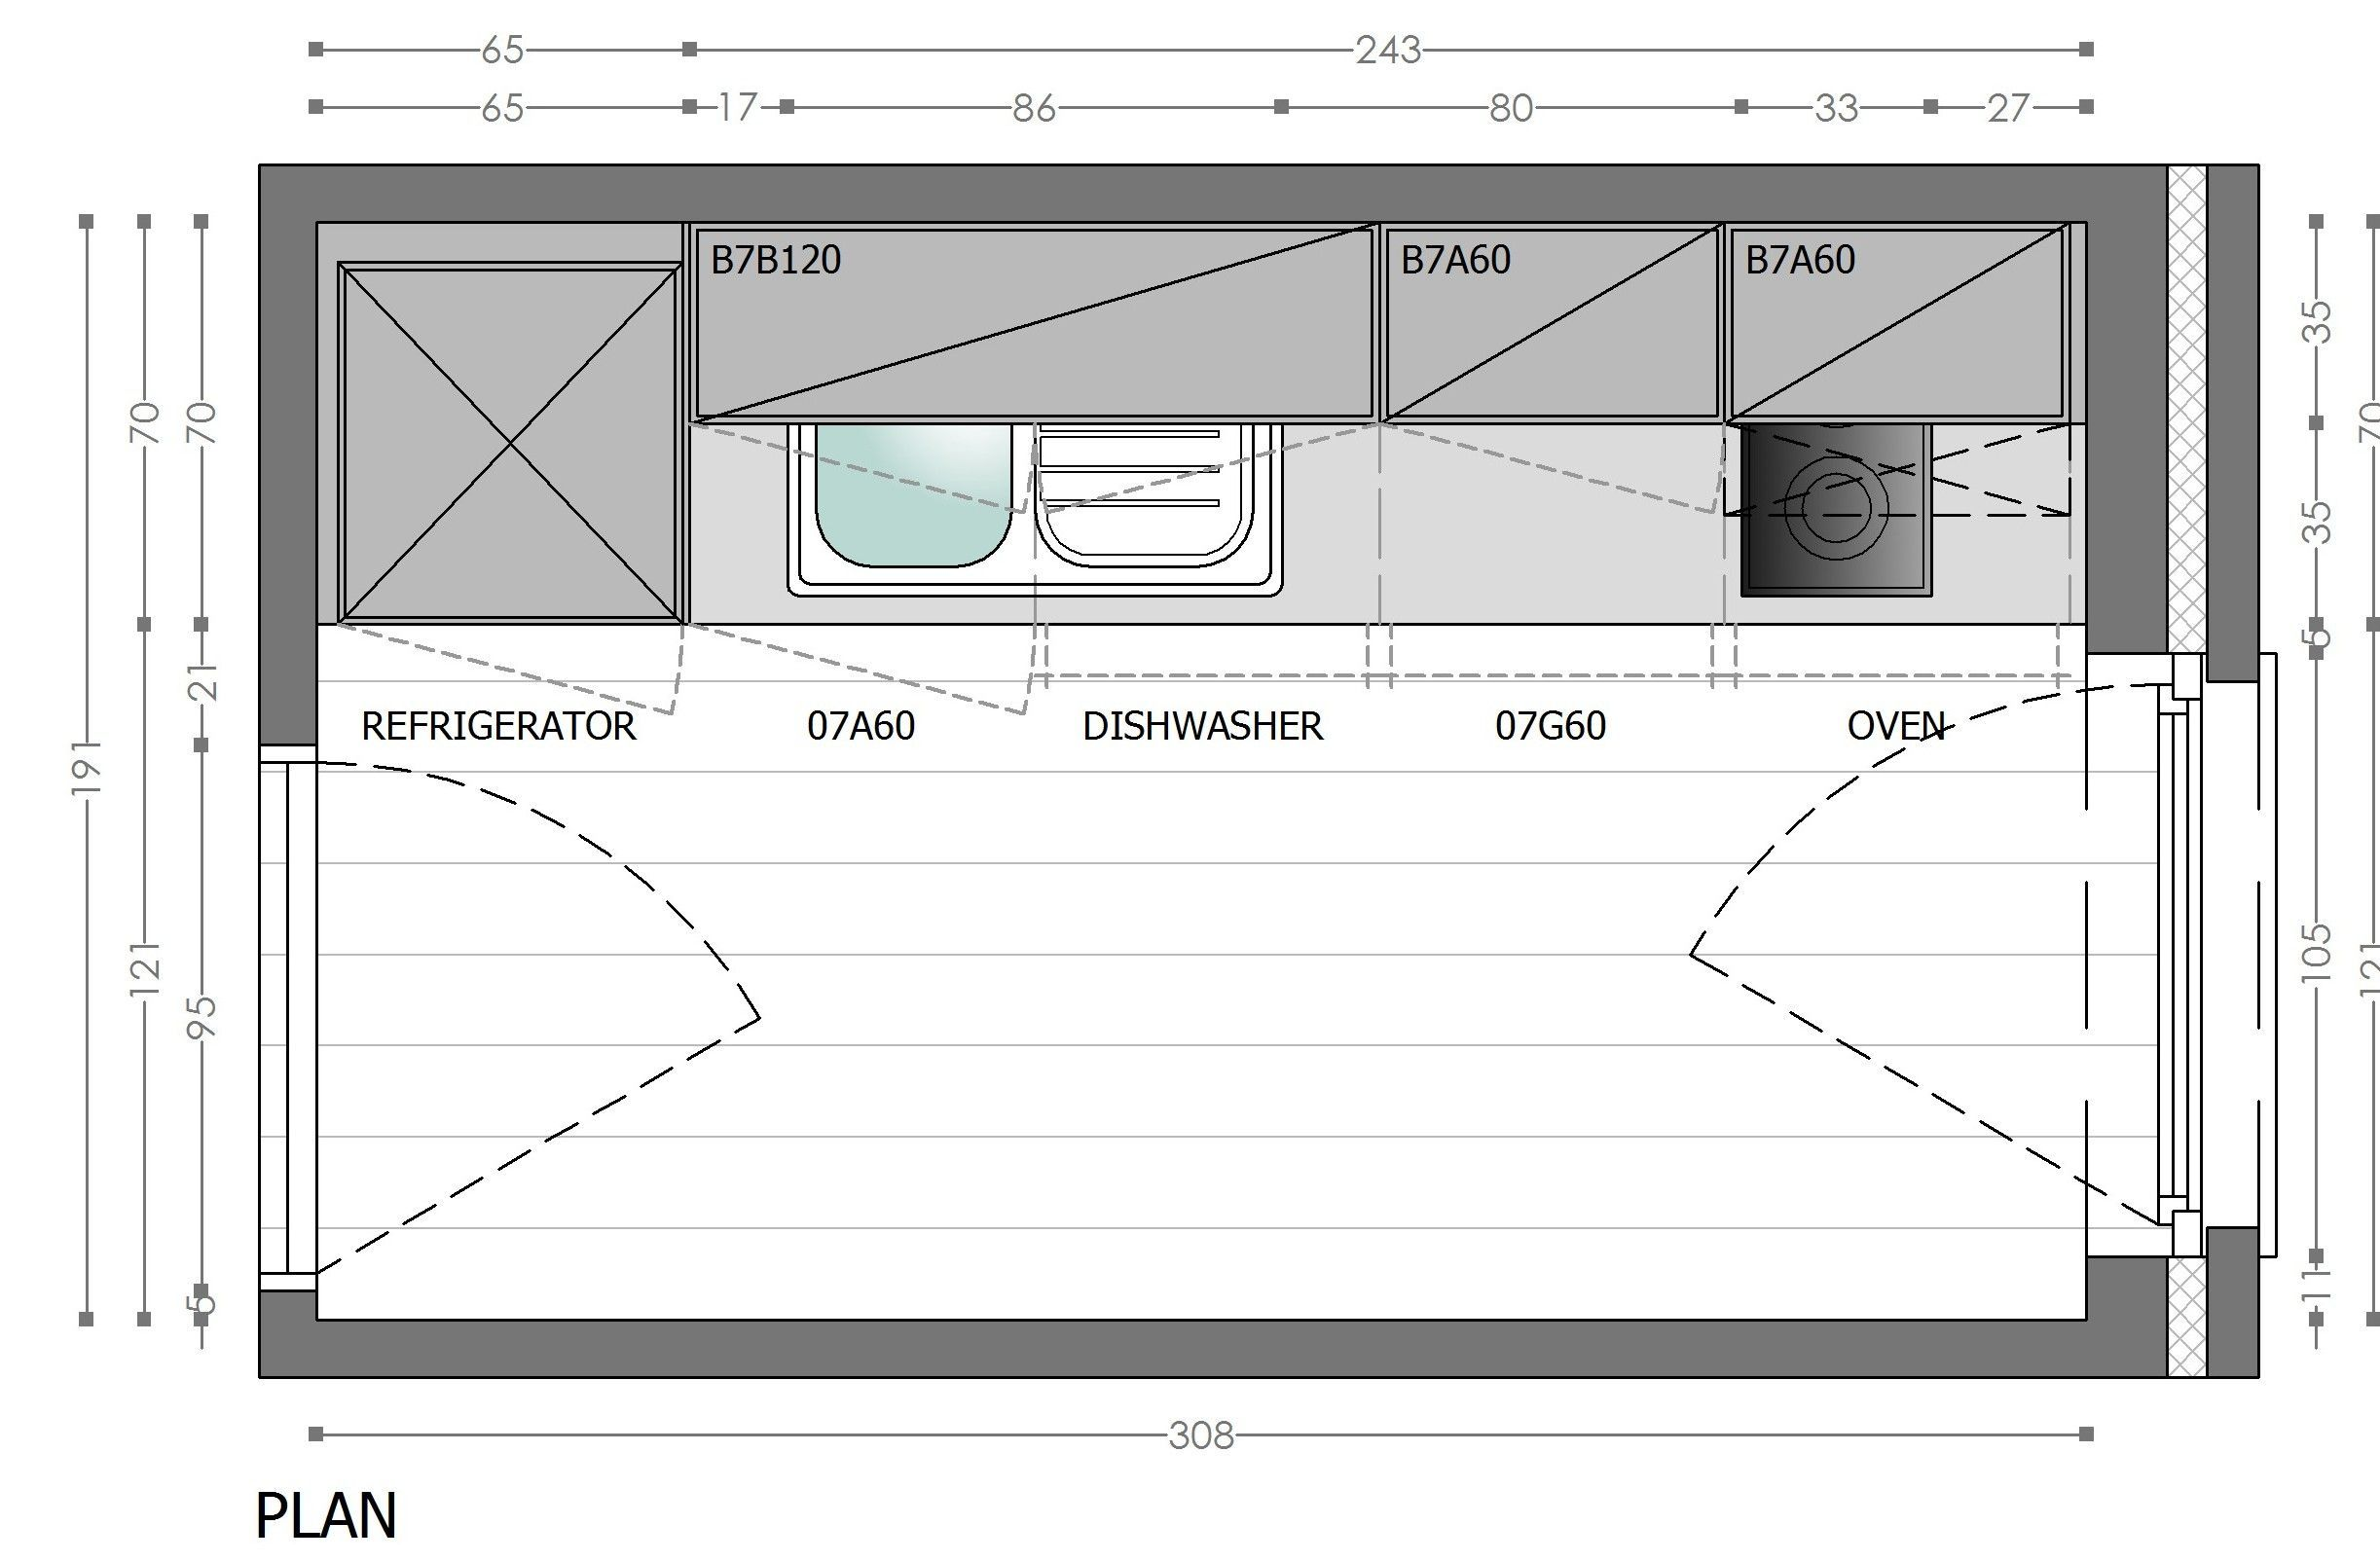 kitchen plan from twicemice.com   Kitchen layout plans, One wall ...